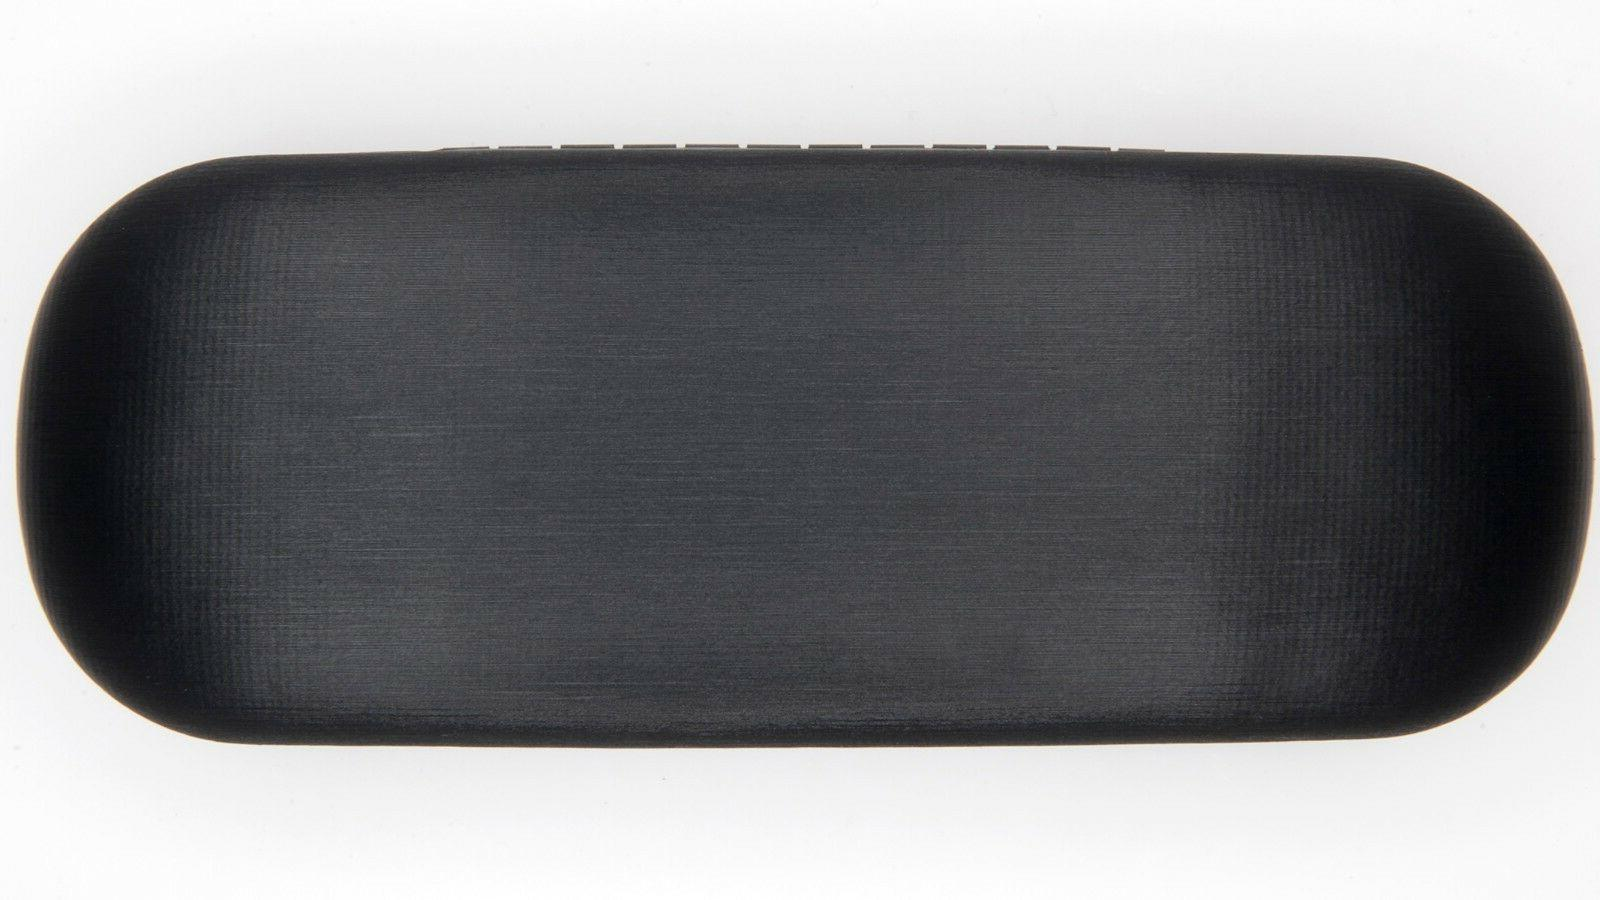 NEW Clam Hard Eyeglasses Case w/ Microfiber Cleaning